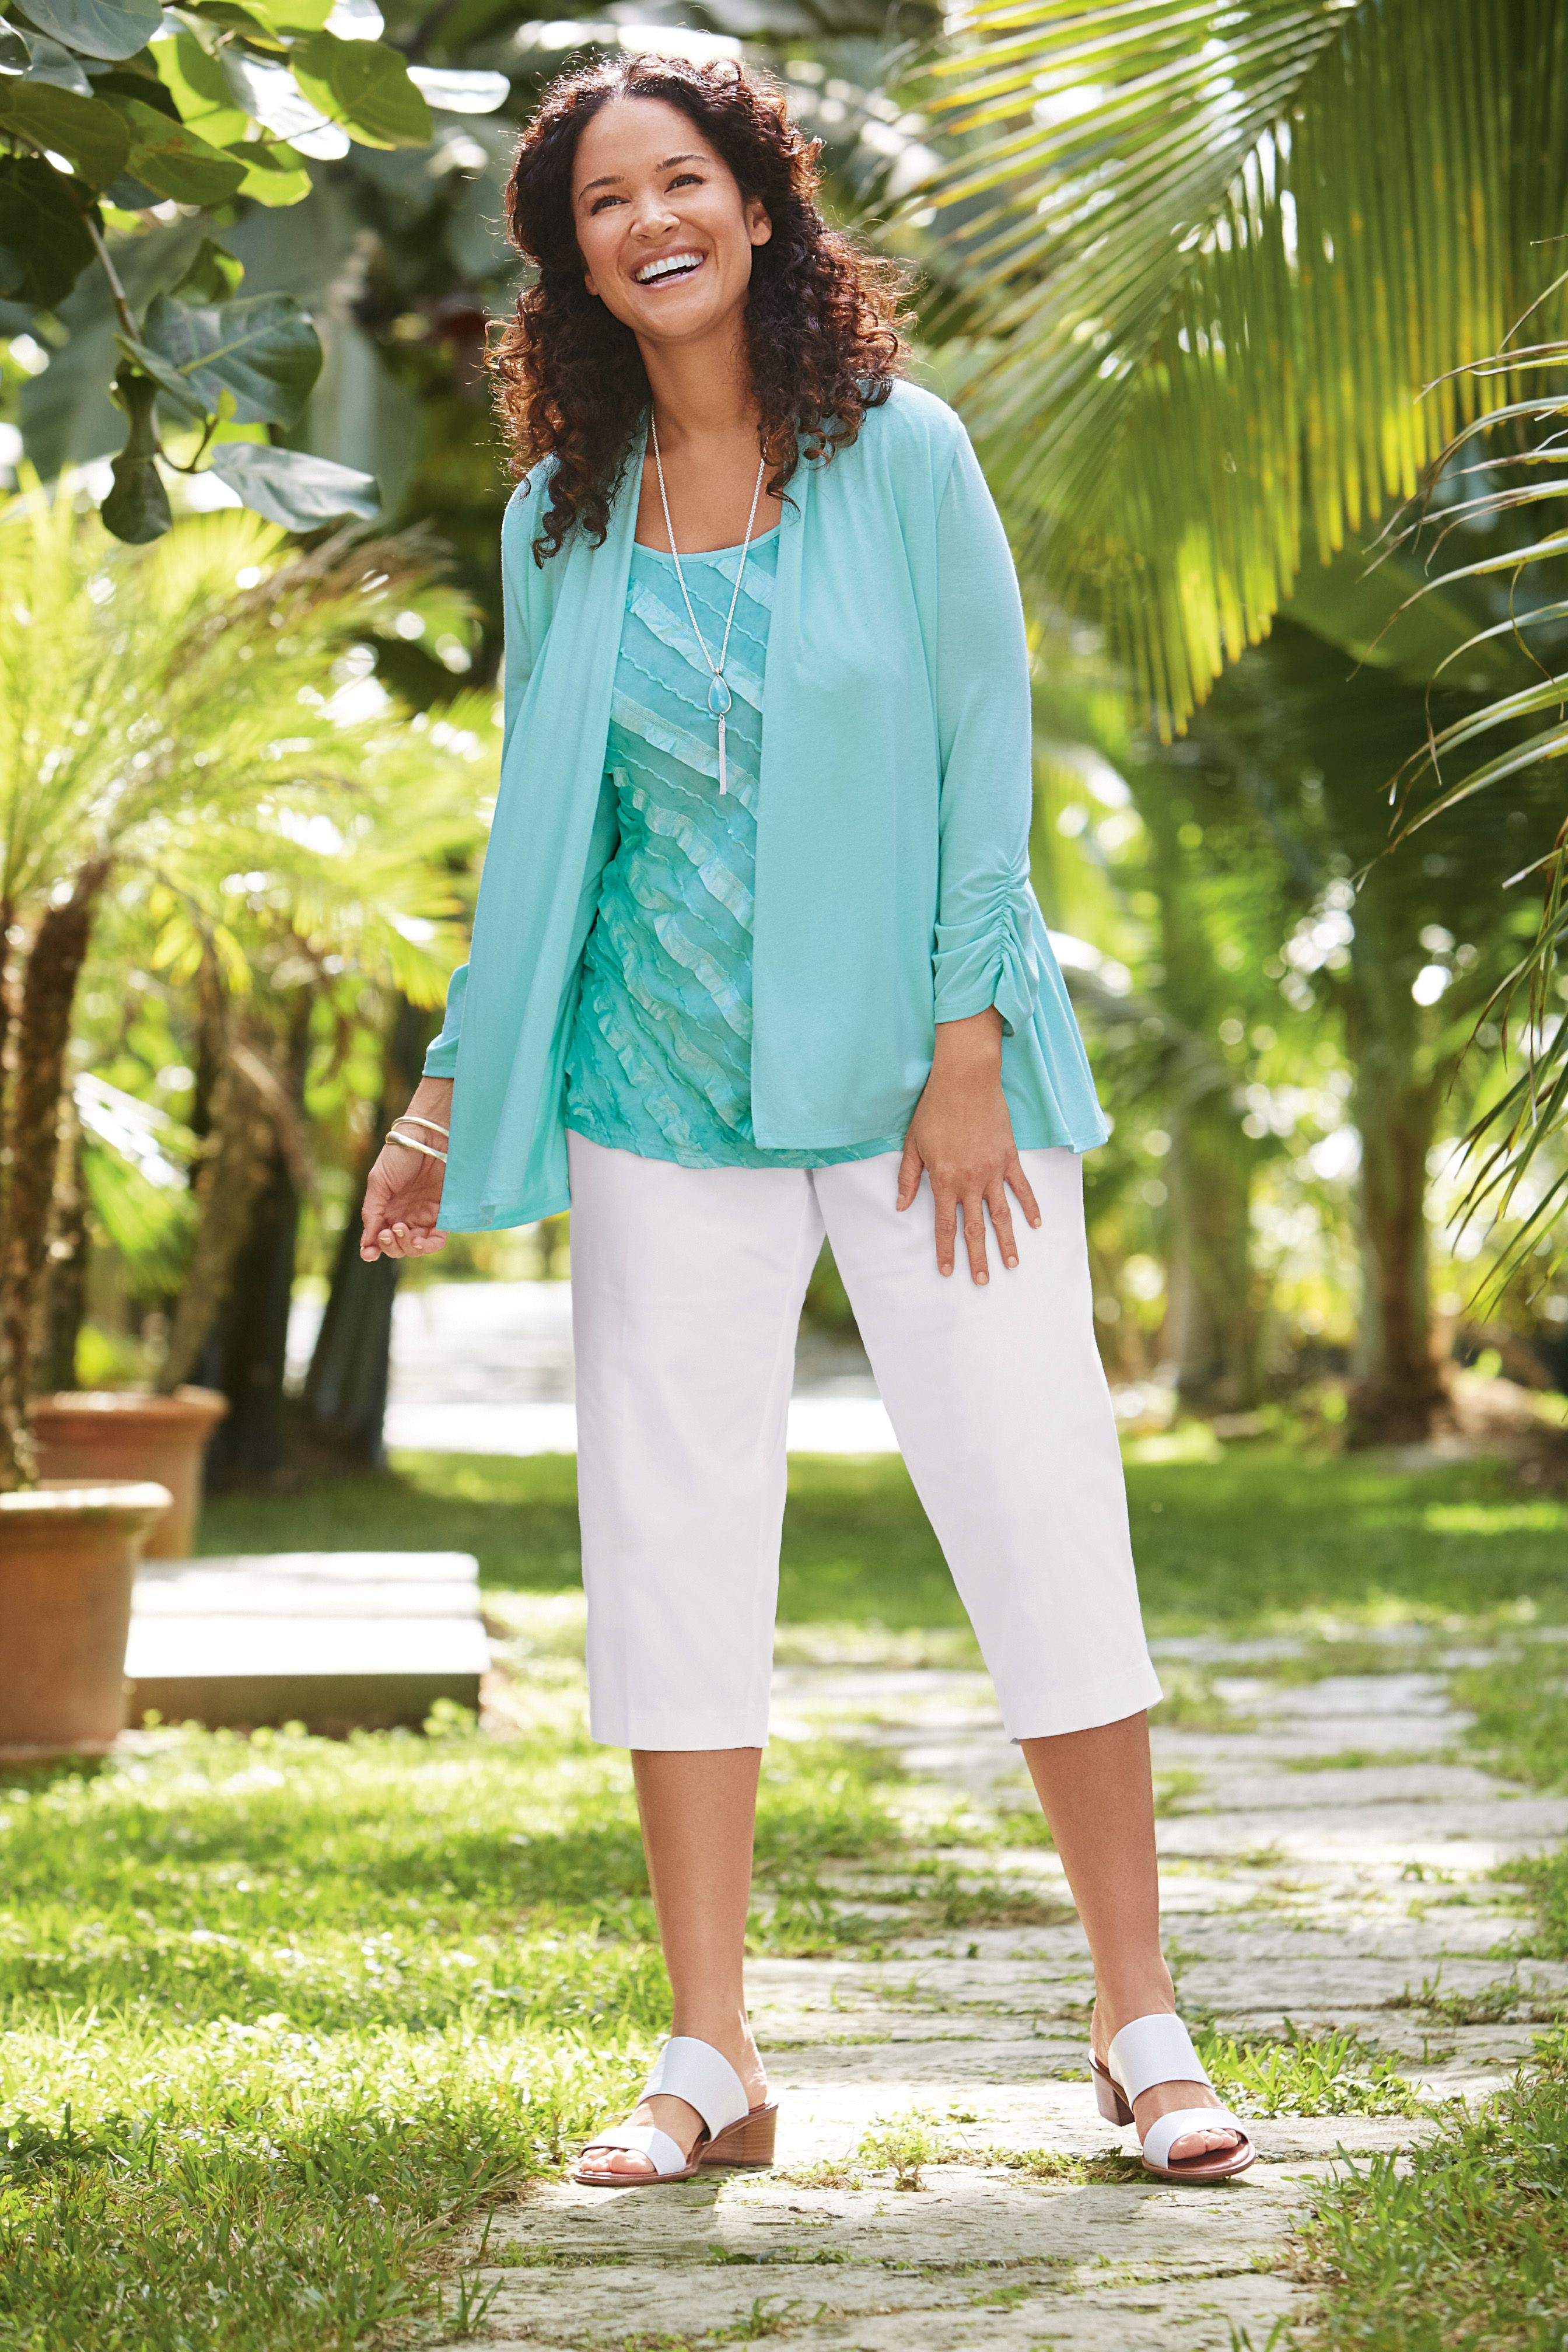 Kim Rogers Plus Size Ruched Sleeve 2Fer & Slimming Solutions Capri Pants. This combination offers a figure-flattering look that's ideal for any casual occasion.